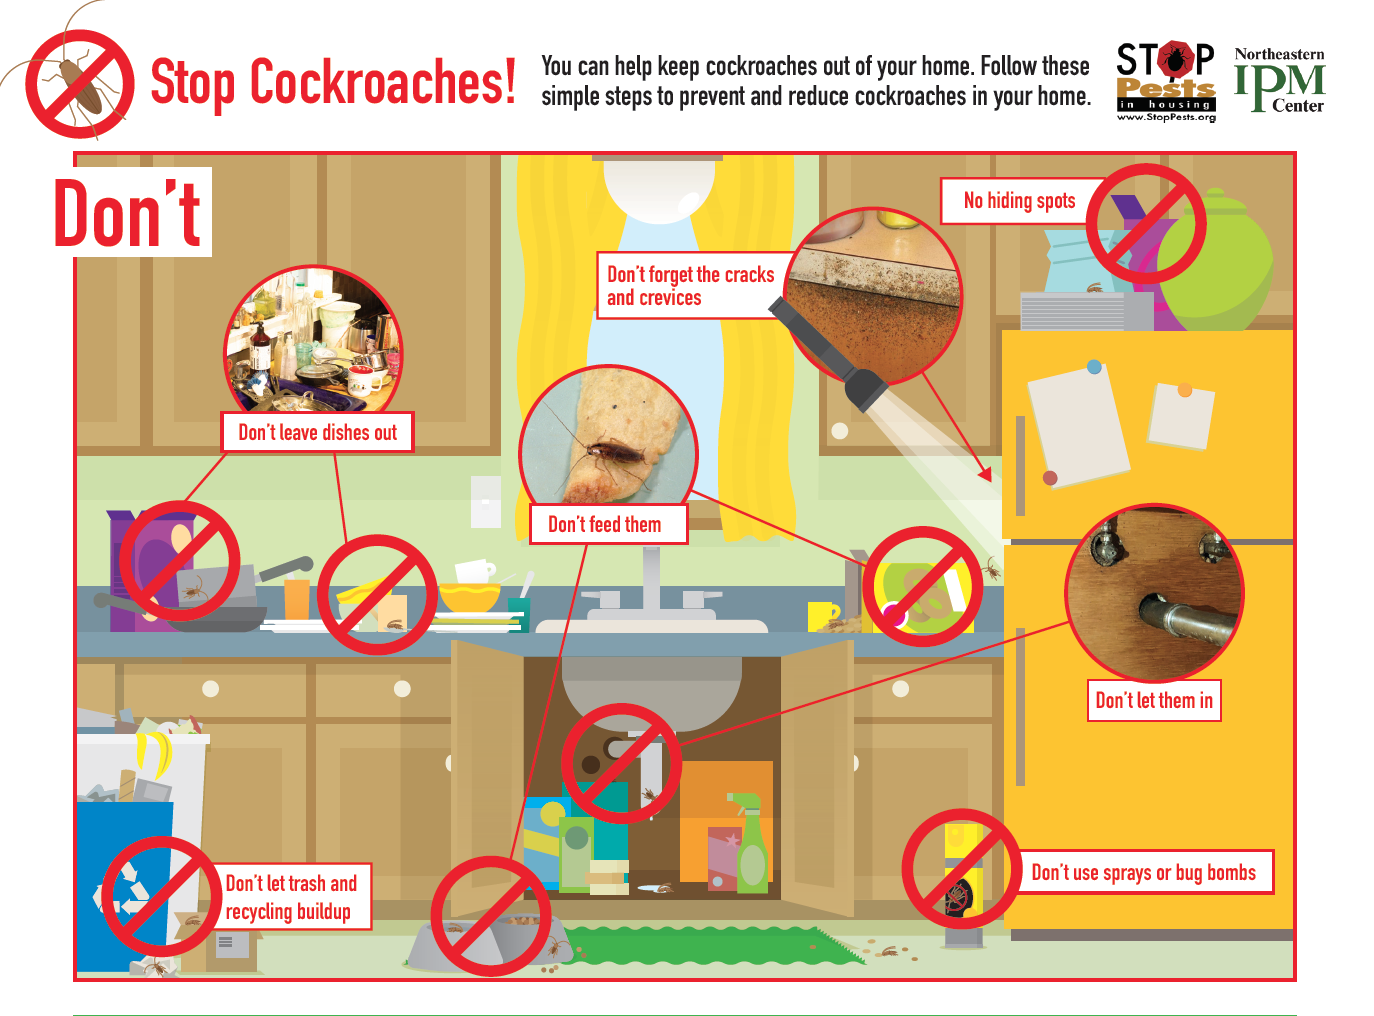 A guide with pictures shows what you should not do when preventing and controlling cockroaches